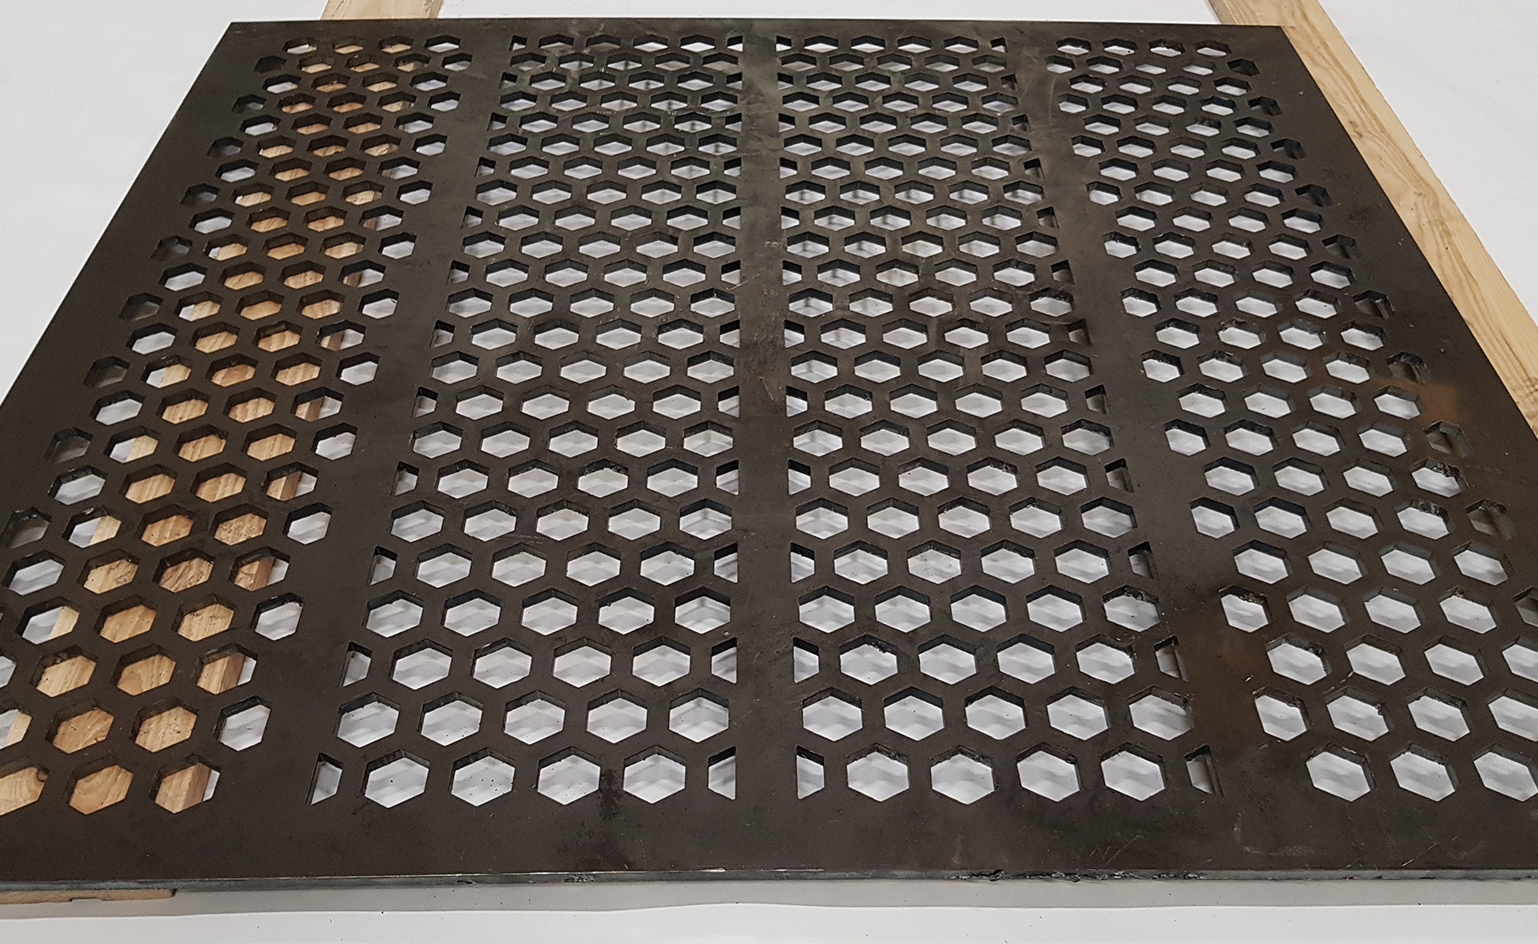 Hexagon holes Perforated metal screens